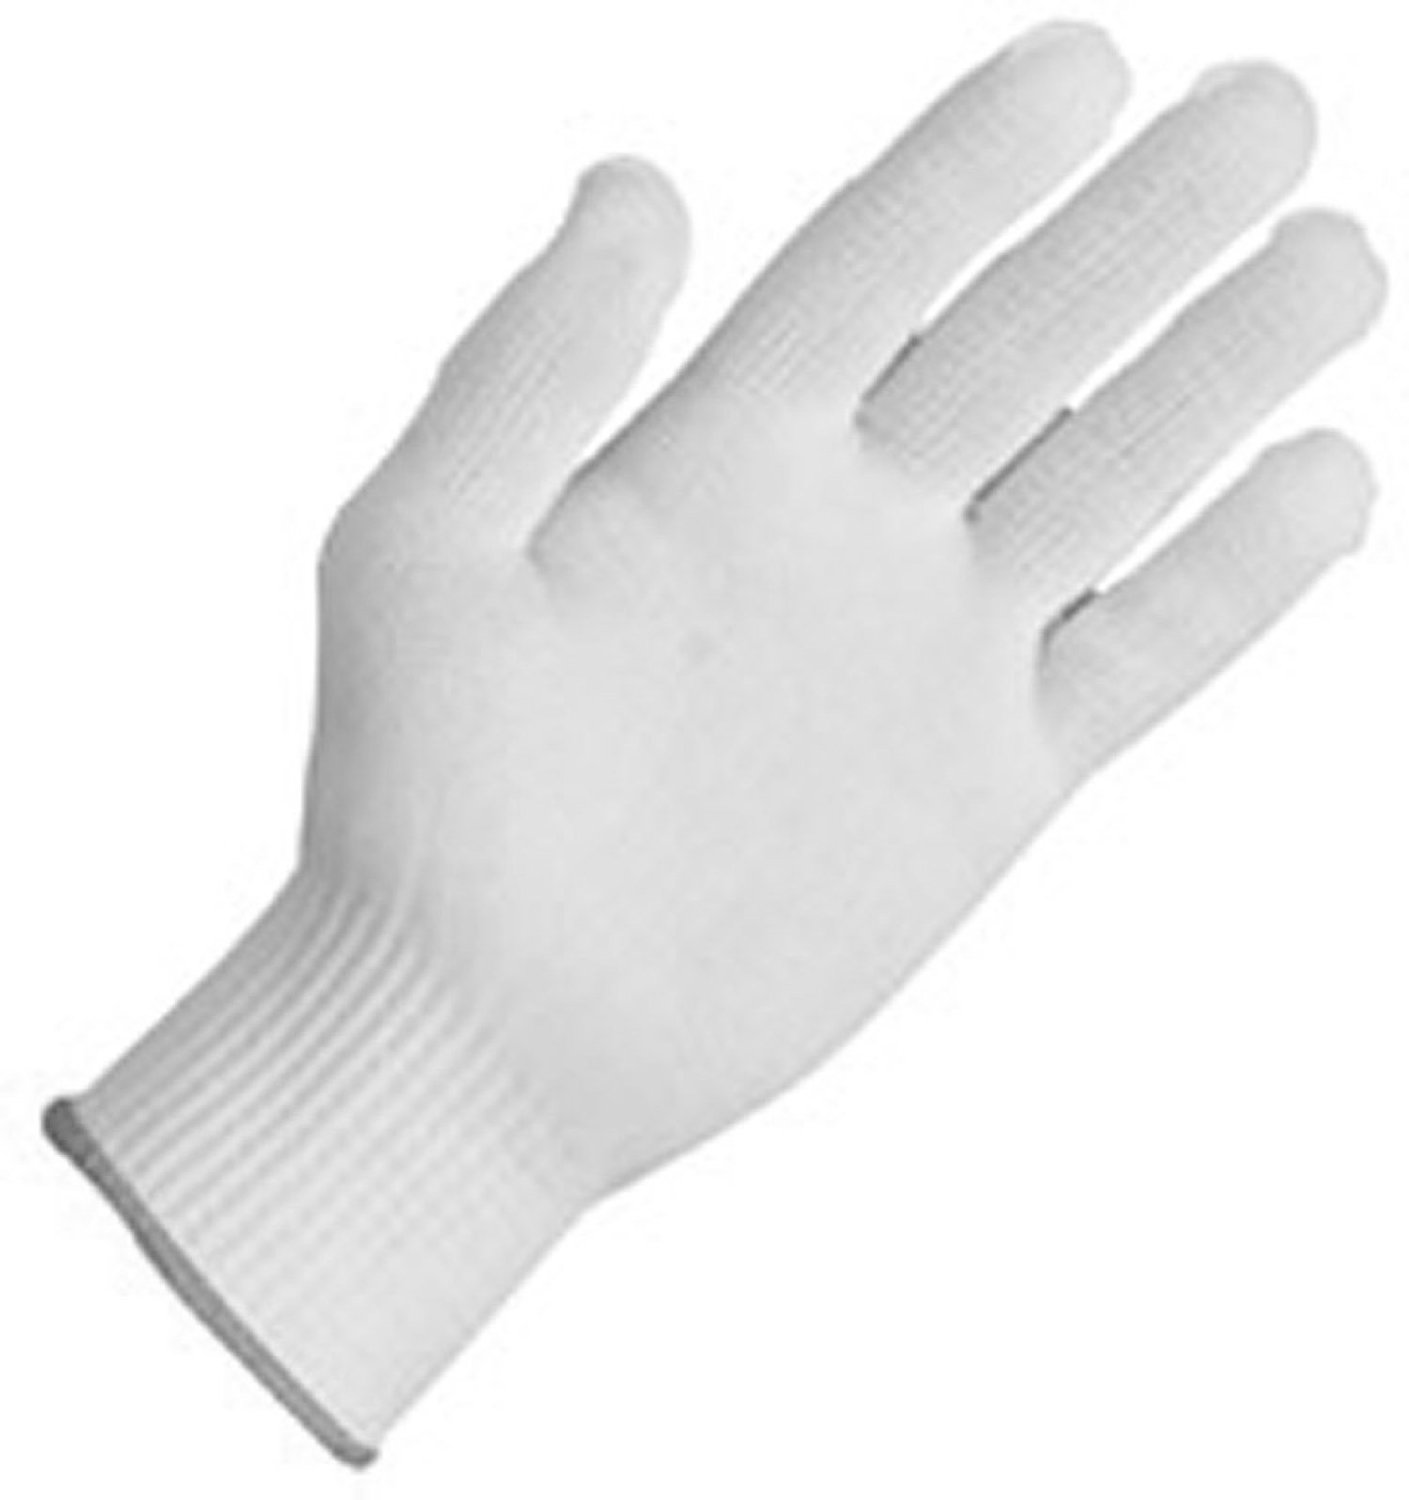 Zenport Gloves GN026 12 Pair Full Finger Gloves, Glove Liner, 10 Gram Tetoron Polyester Fiber Construction